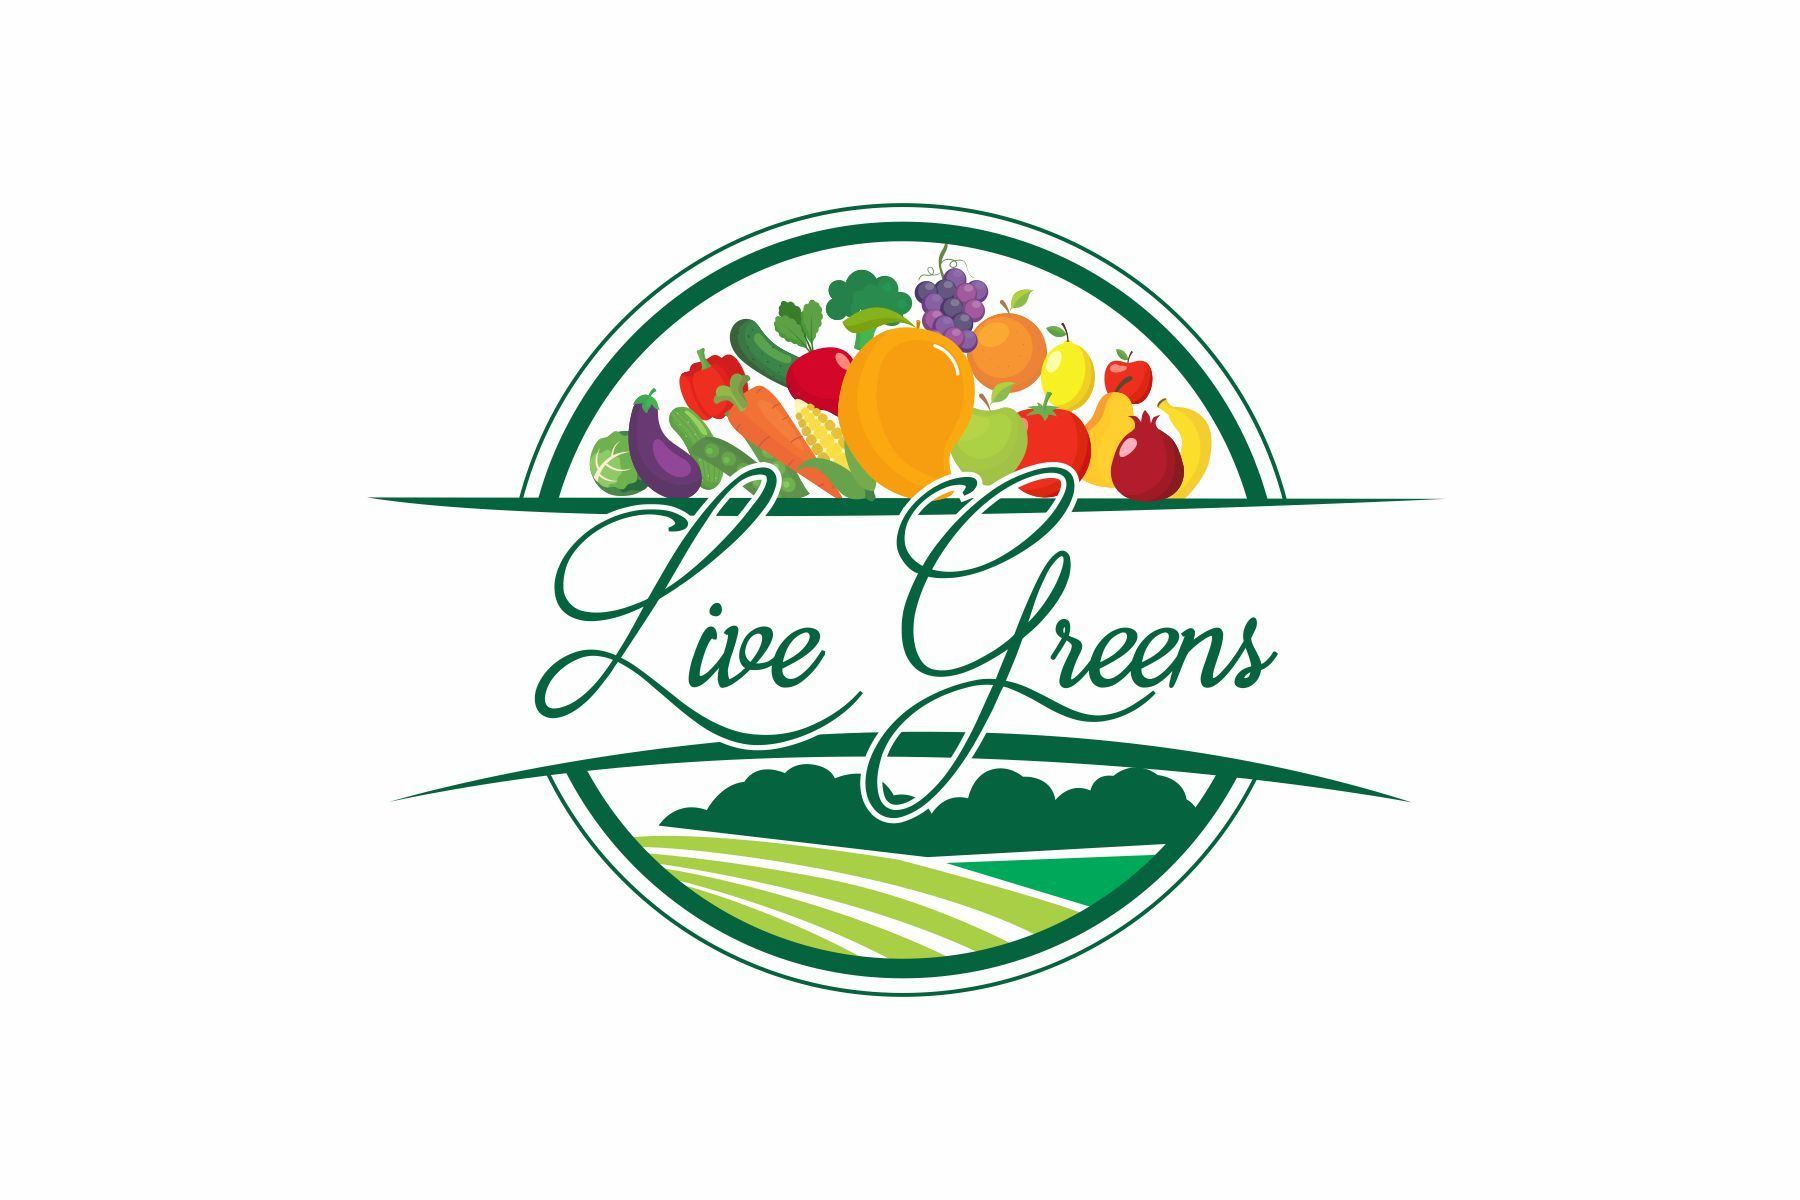 Live Greens Logo Nature Of Business Is They Use To Sale Import And Export Fruits And Vegetables They Do The Organic Farming Also Fruit Logo Green Logo Logos